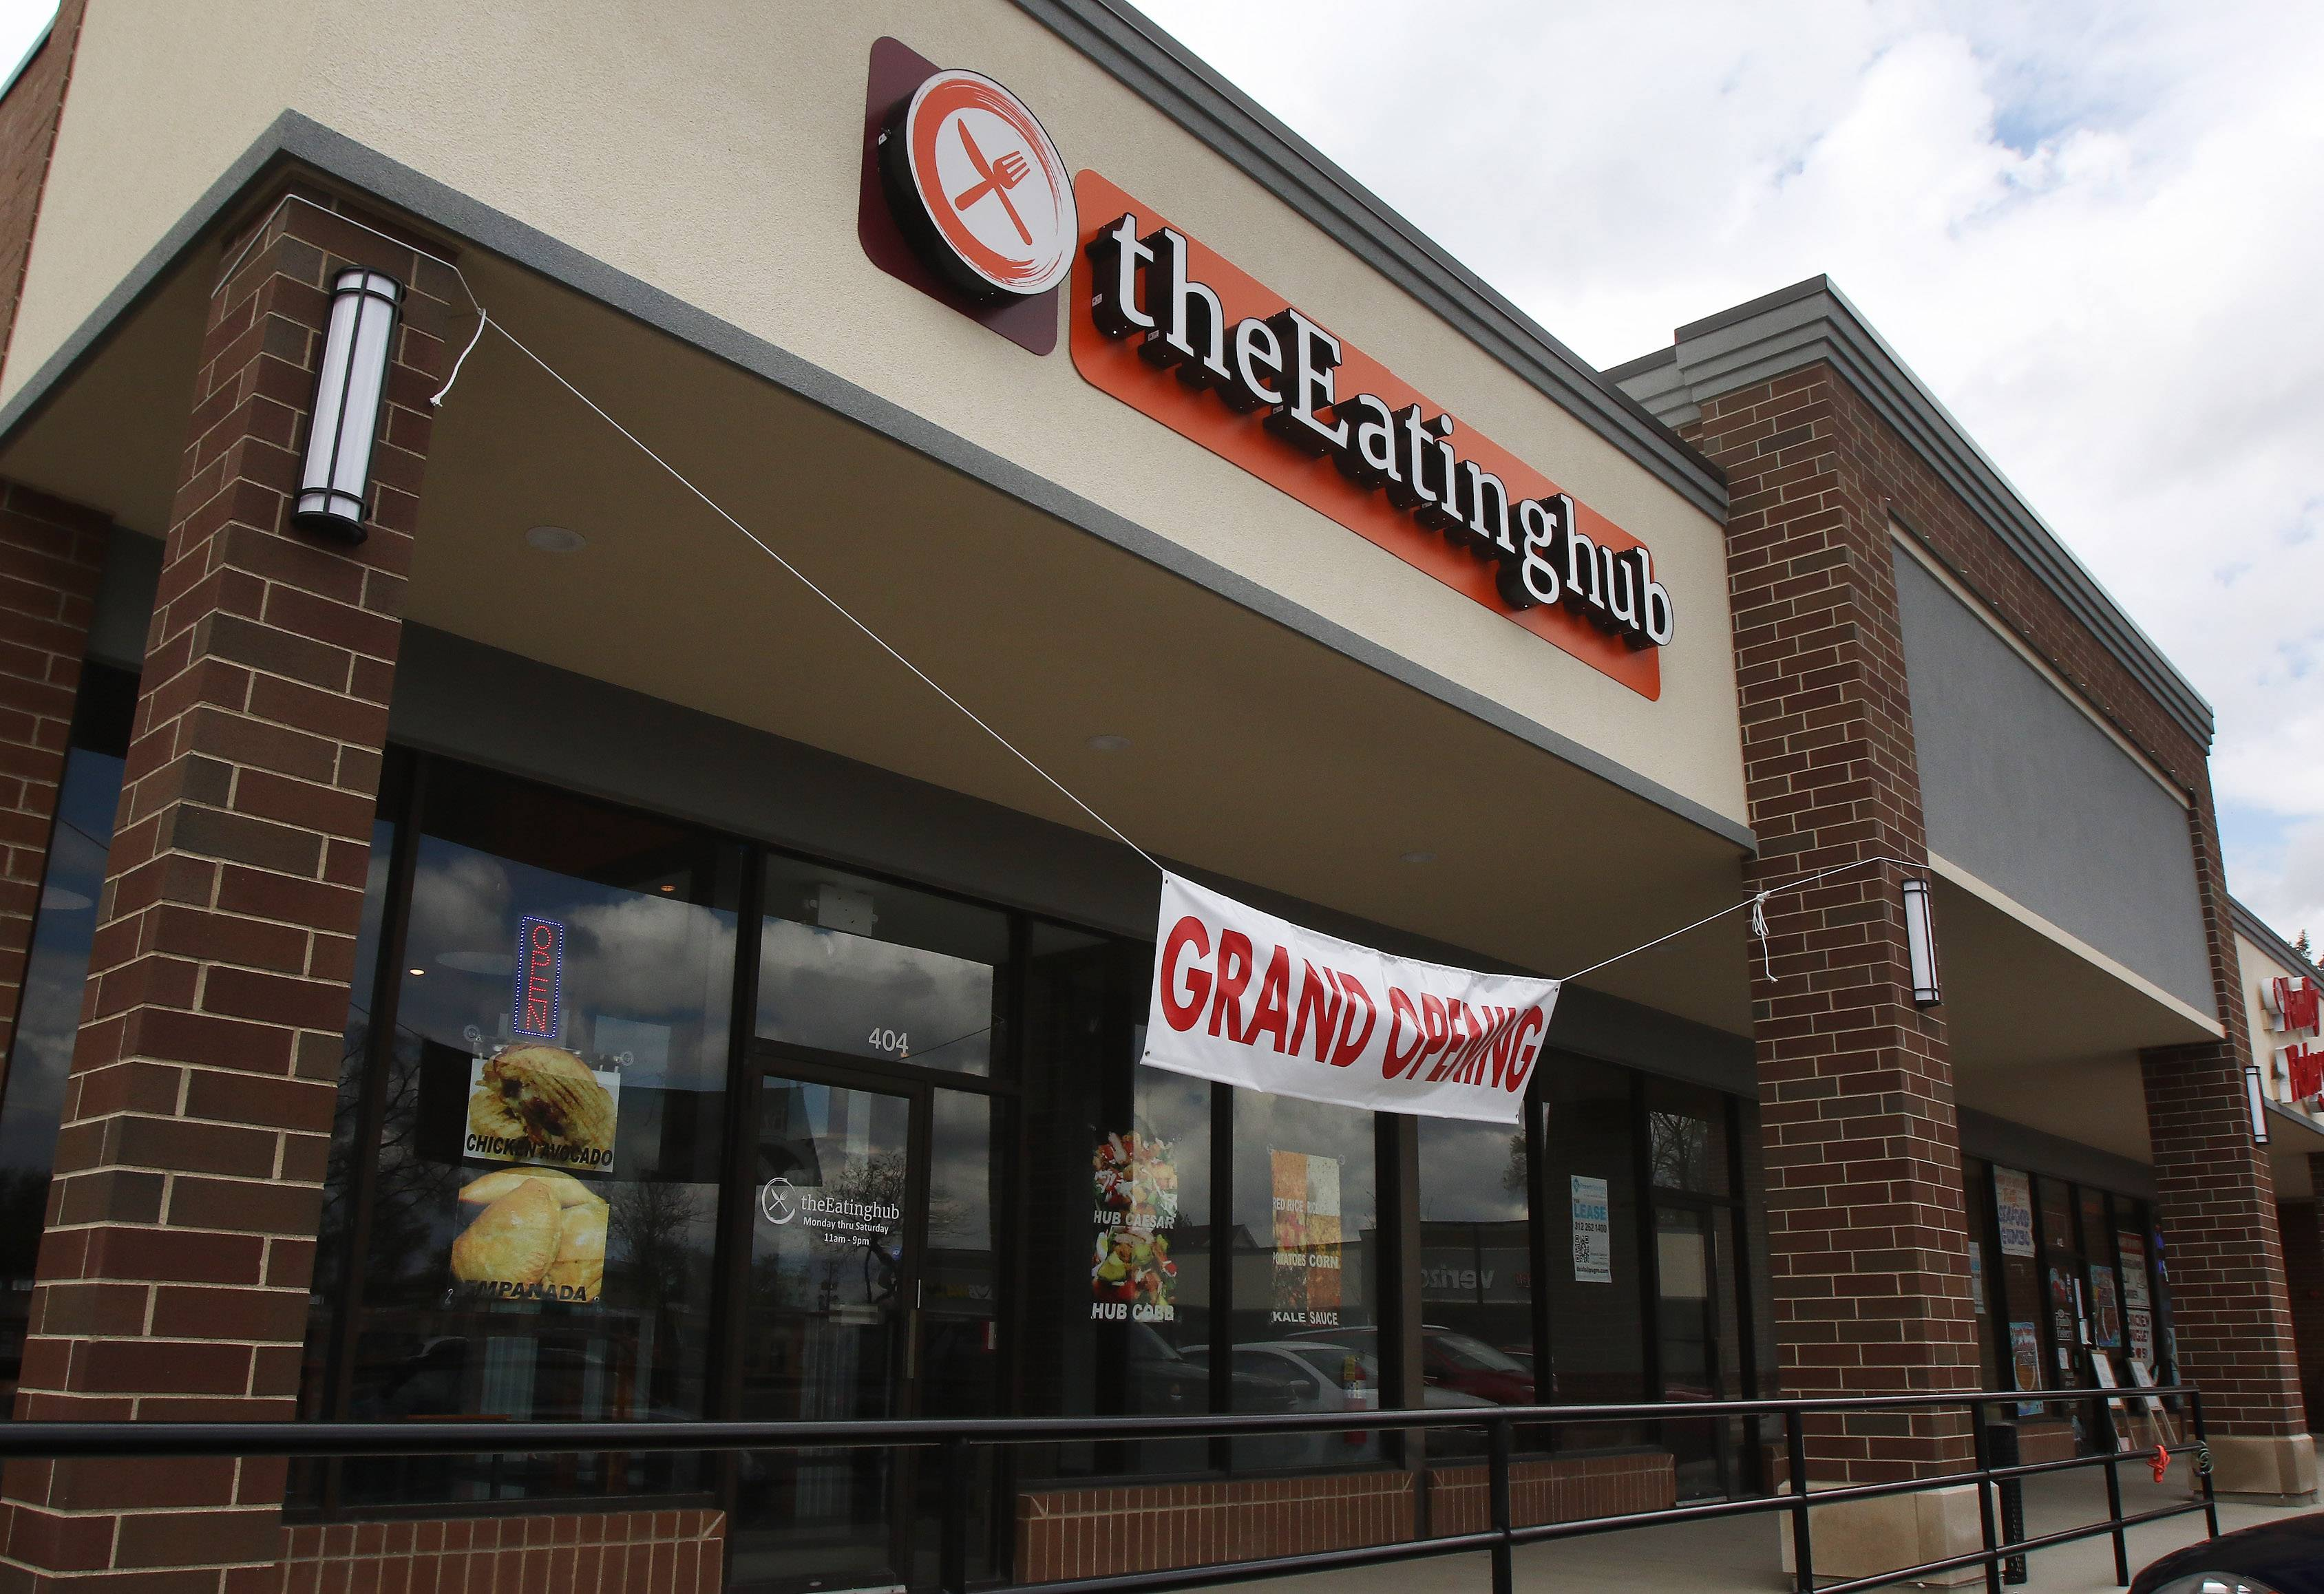 Restaurant promising healthier options opens in Mundelein